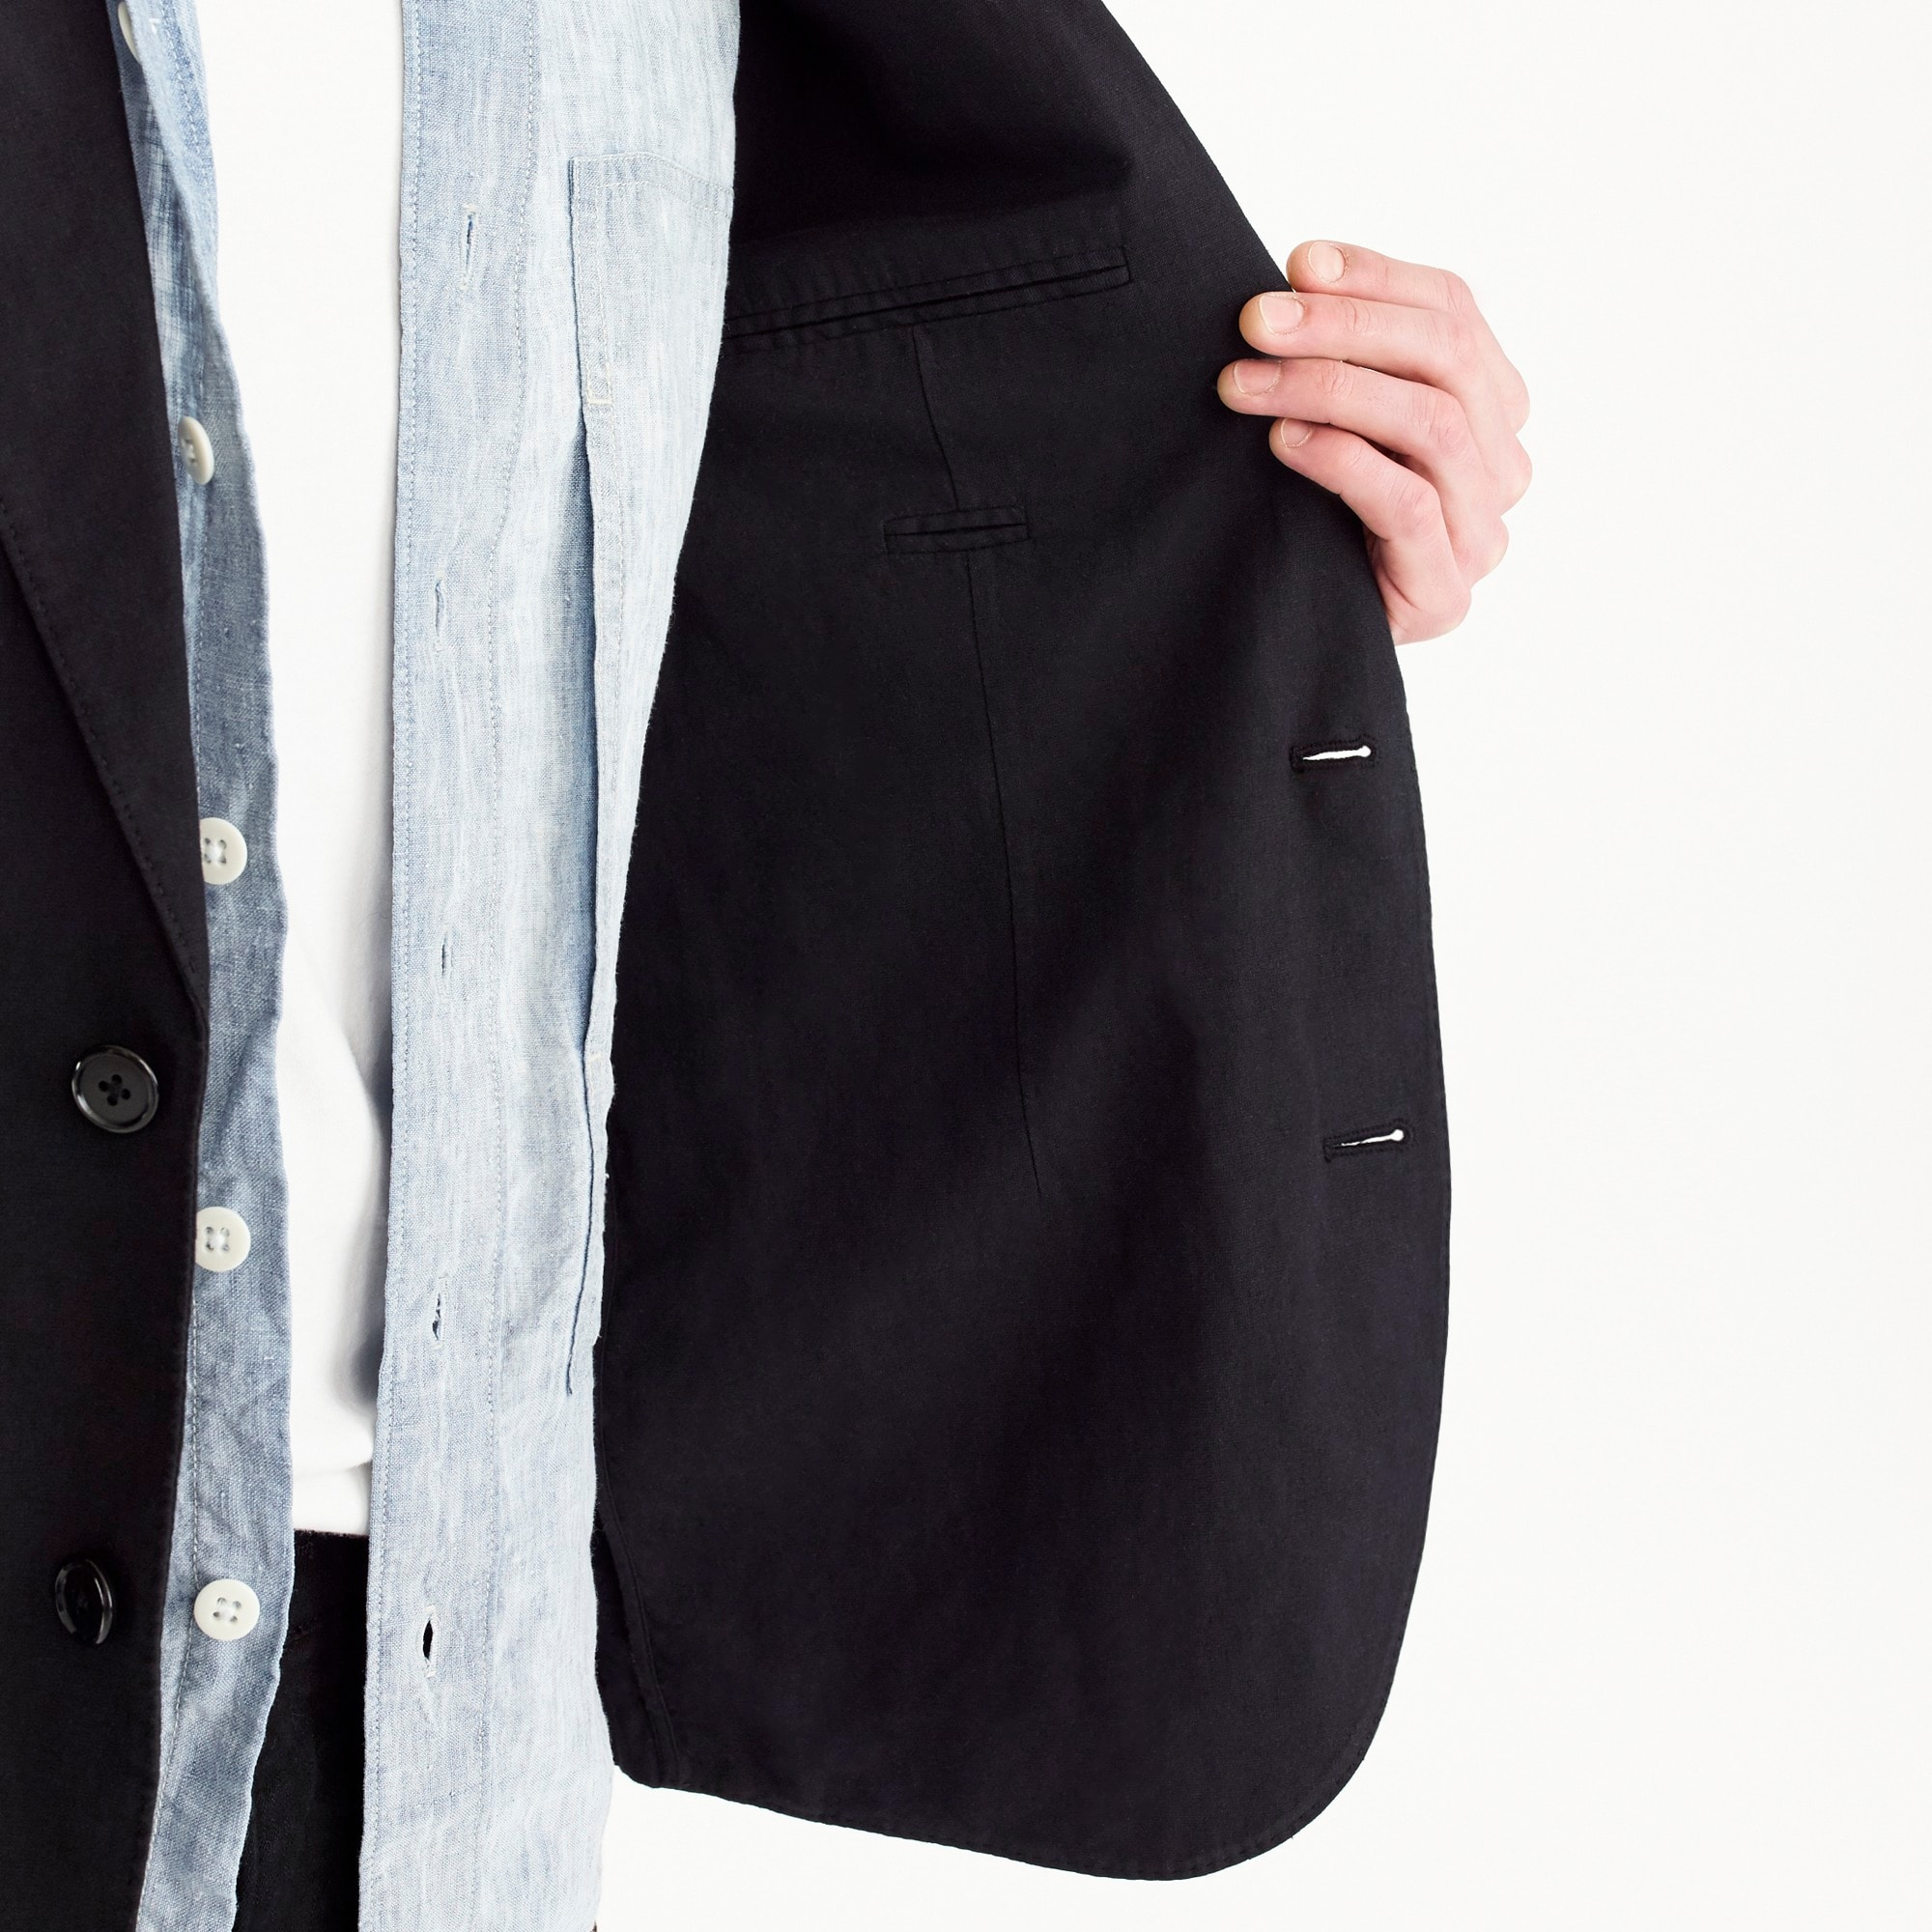 Image 3 for Unstructured Slim-fit Ludlow blazer in garment-dyed cotton-linen